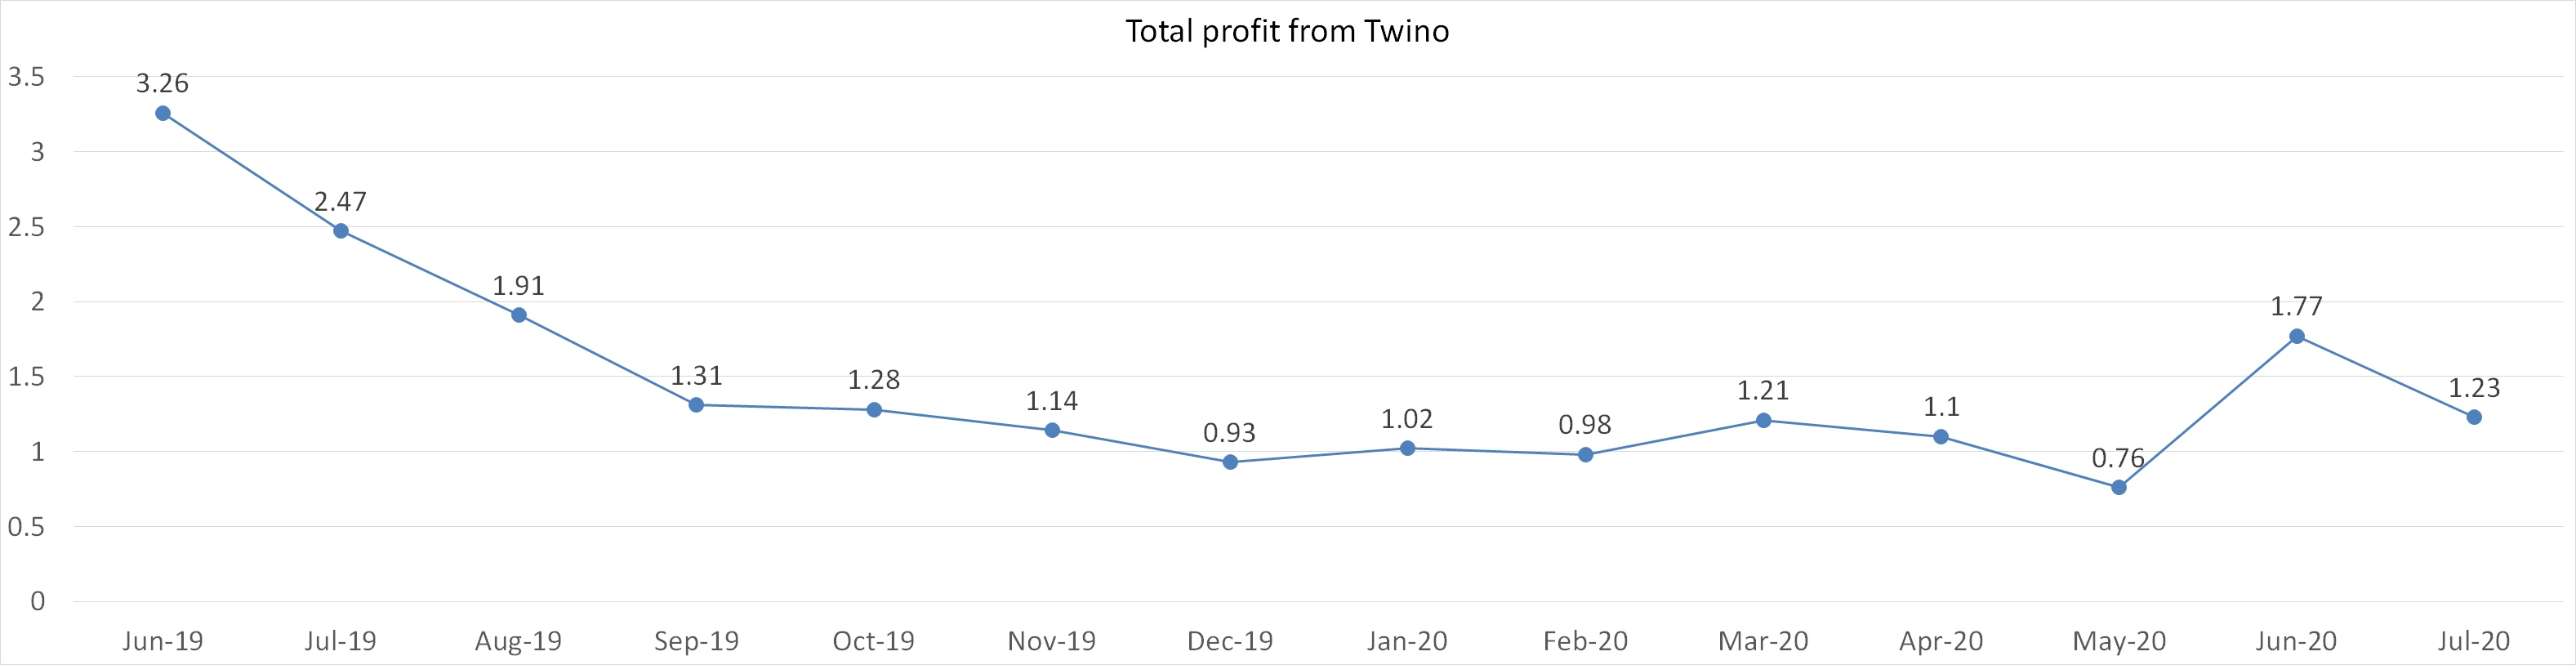 Total profit from twino july 2020